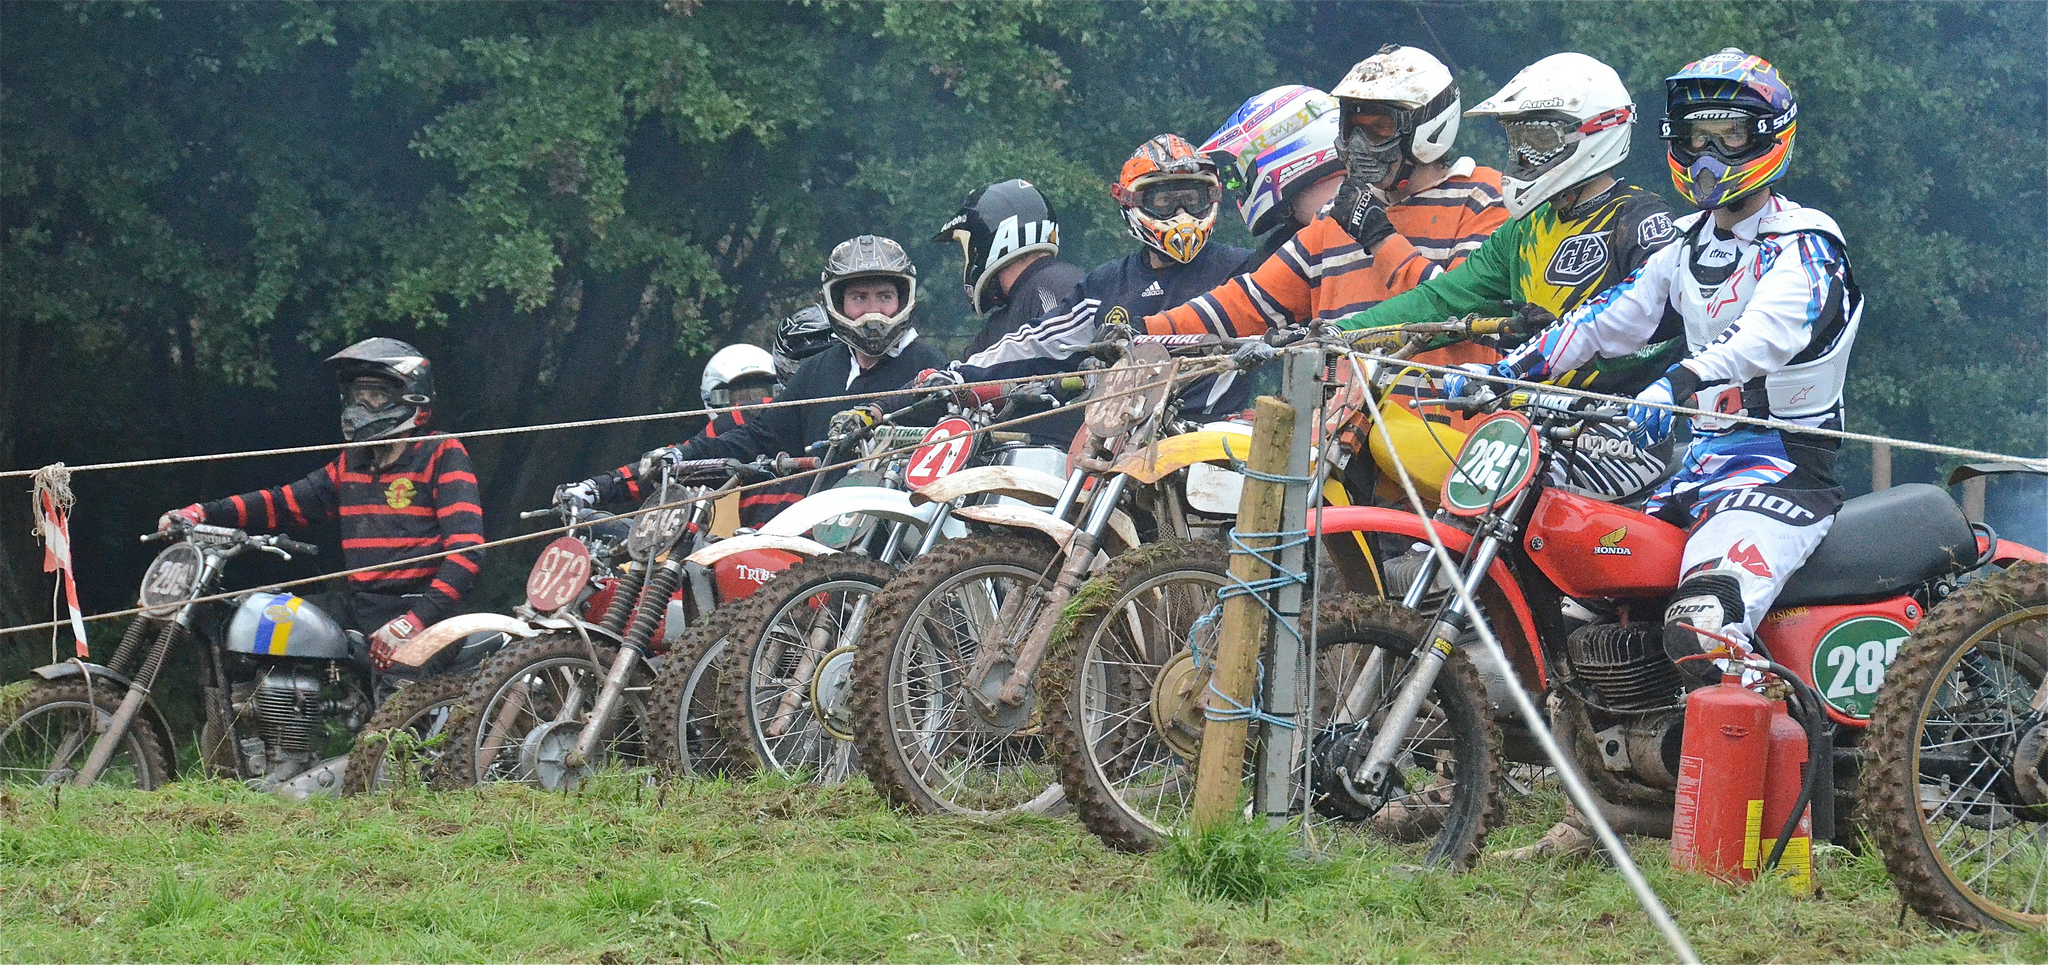 Llanthony Classic Scramble Photos September 2015 classicdirtbikerider.com..55